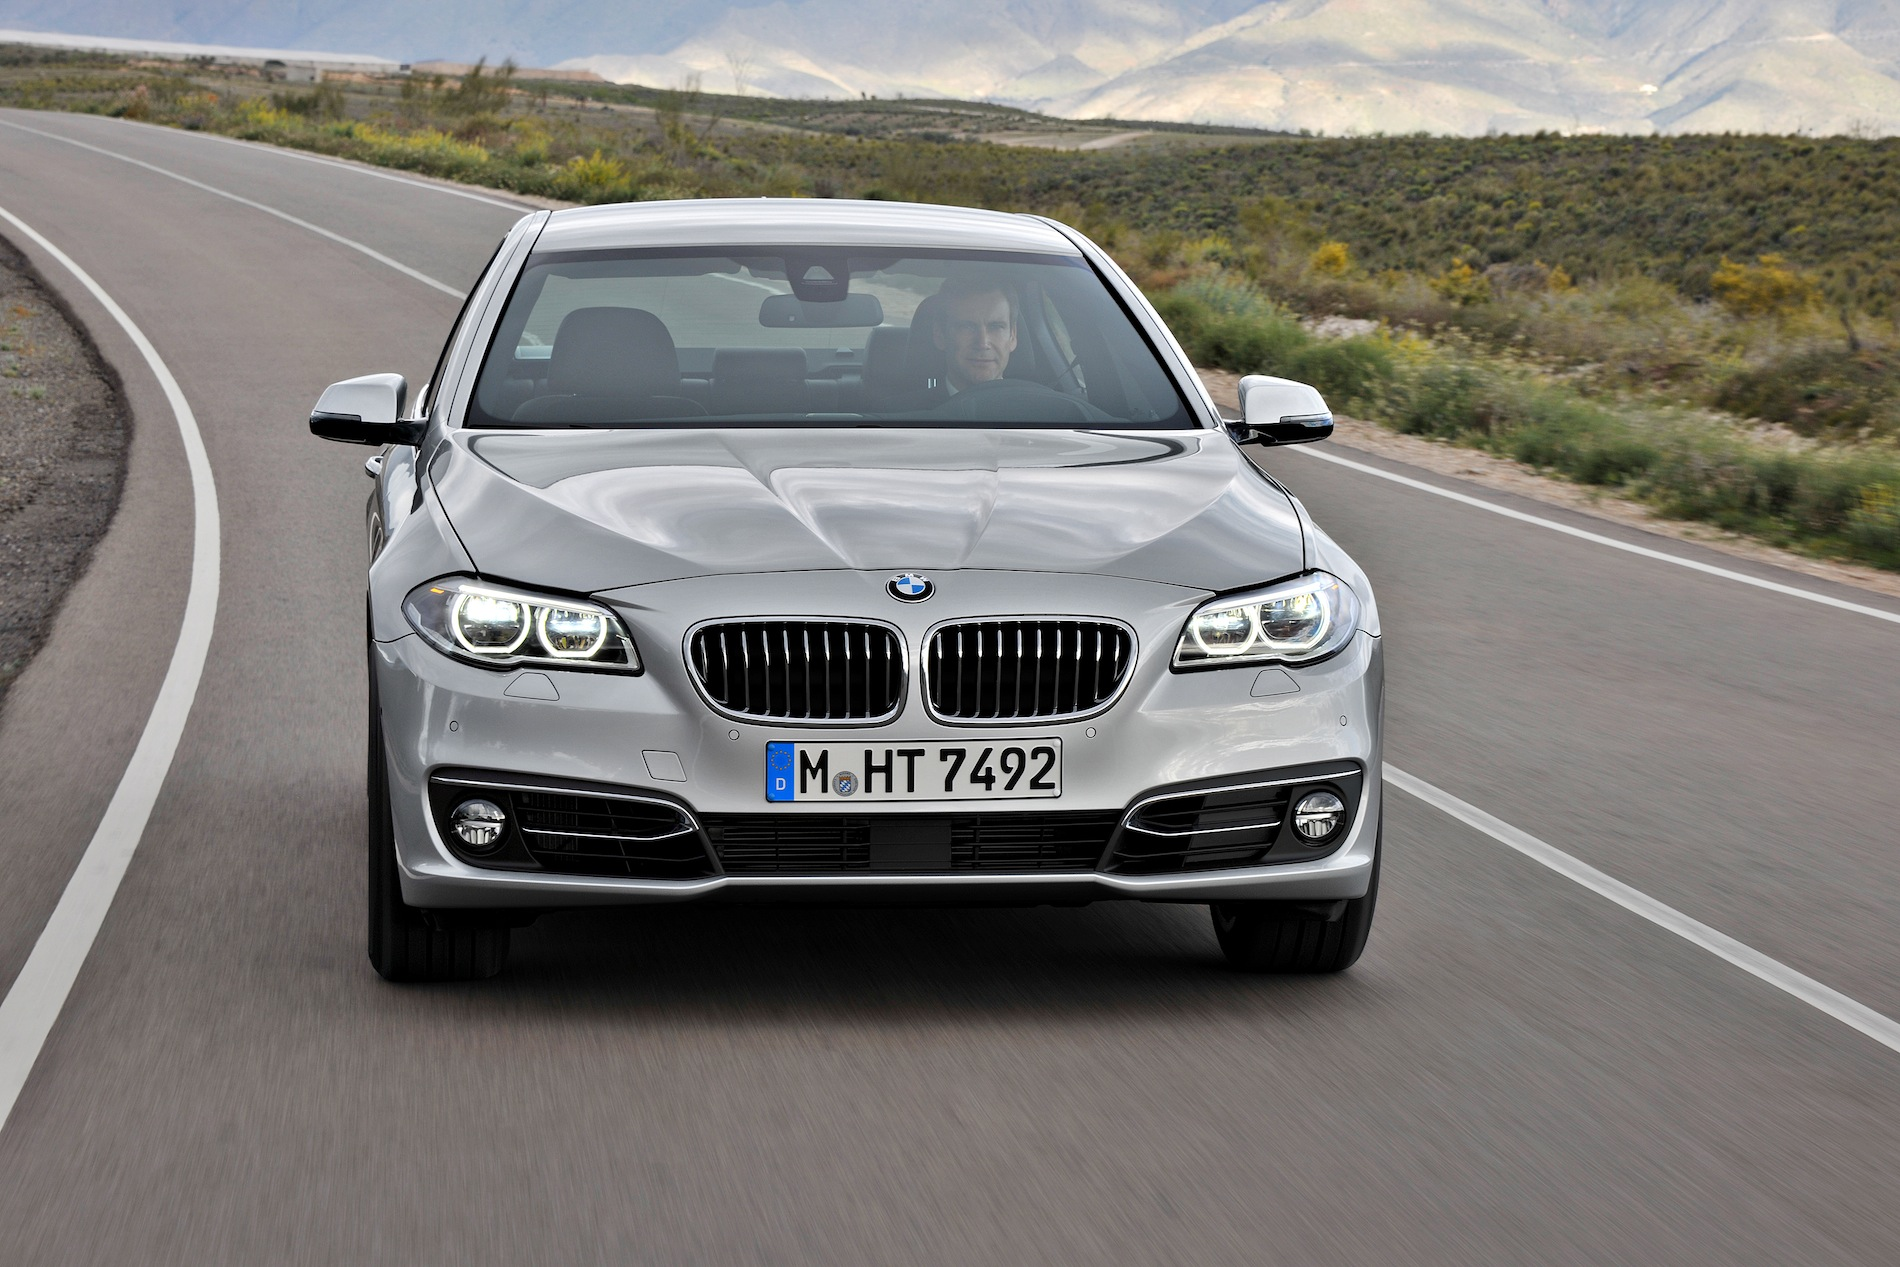 2014 5 Series Lci First Drive Review By Edmunds